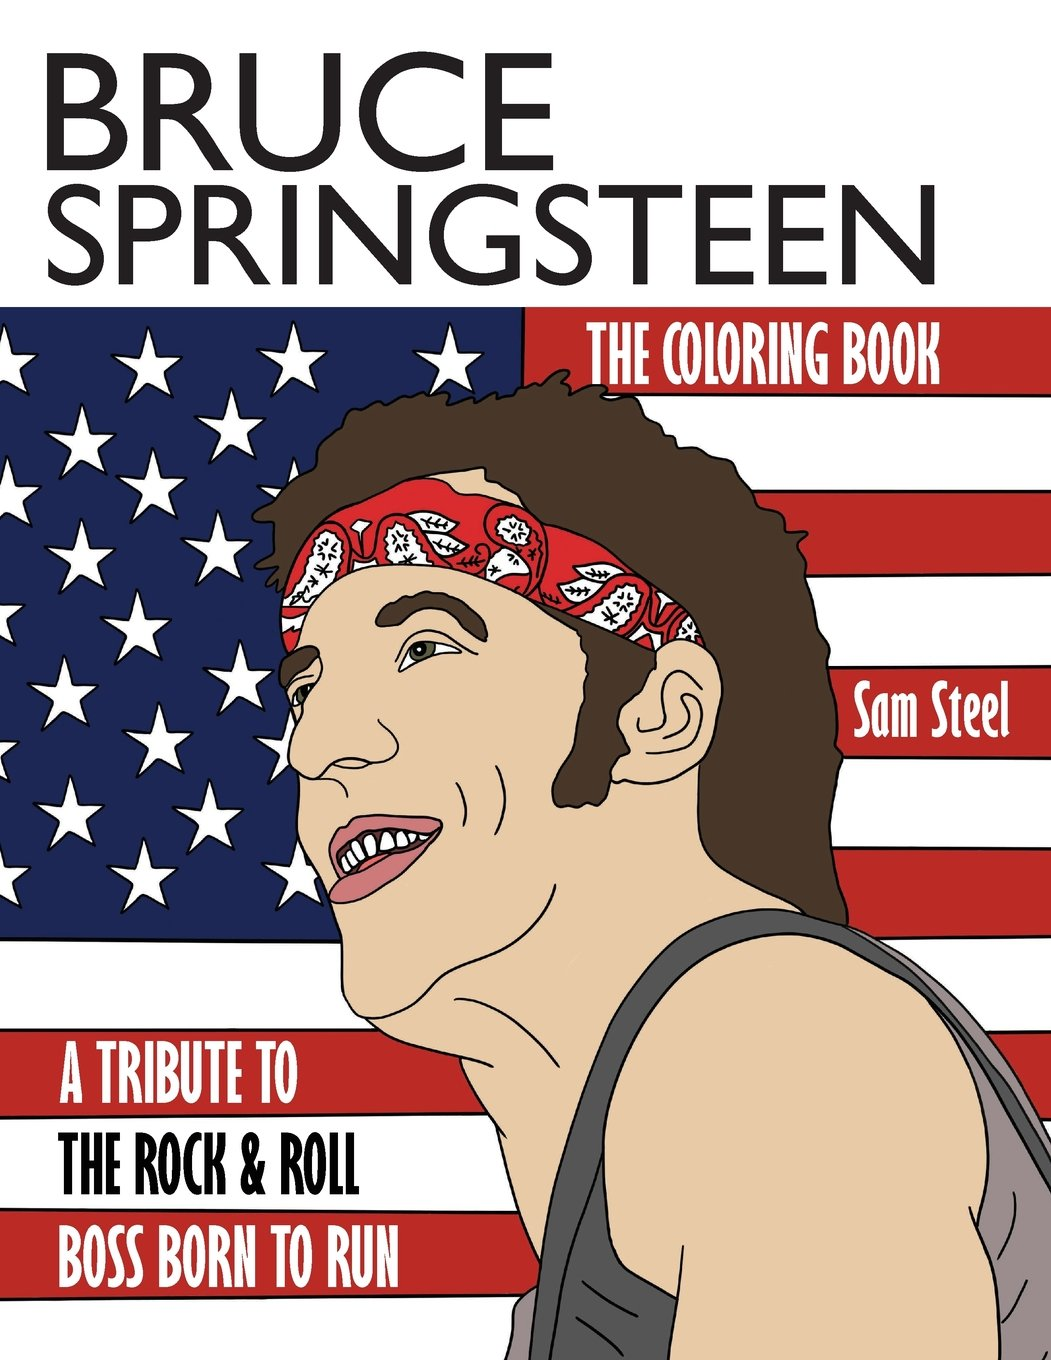 Bruce Springsteen The Coloring Book A Tribute To Rock Roll Boss Born Run Sam Steel 9781945887024 Amazon Books